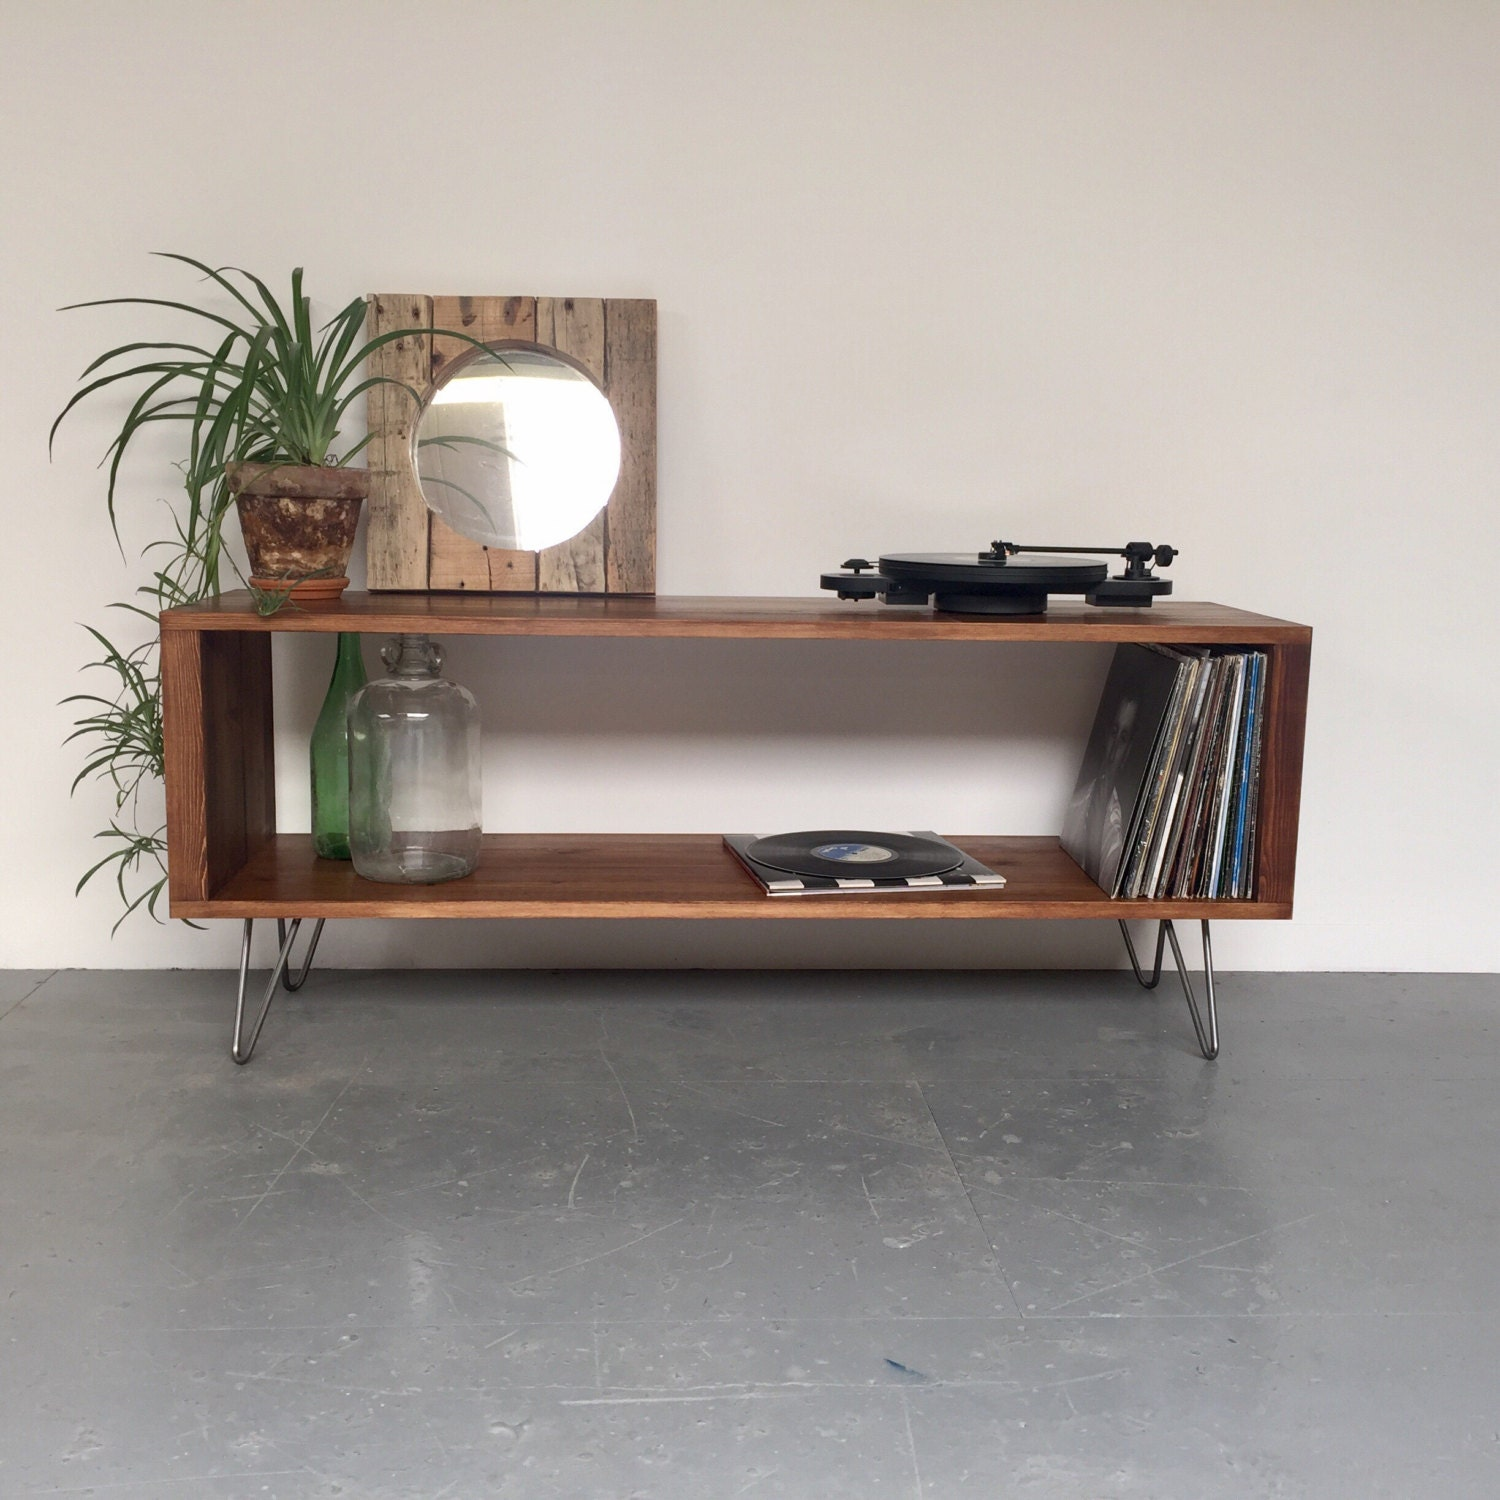 Stanton Large Record Player Stand Vinyl Storage Cabinet Console Coffee Table on Mid Century Hairpin Legs.